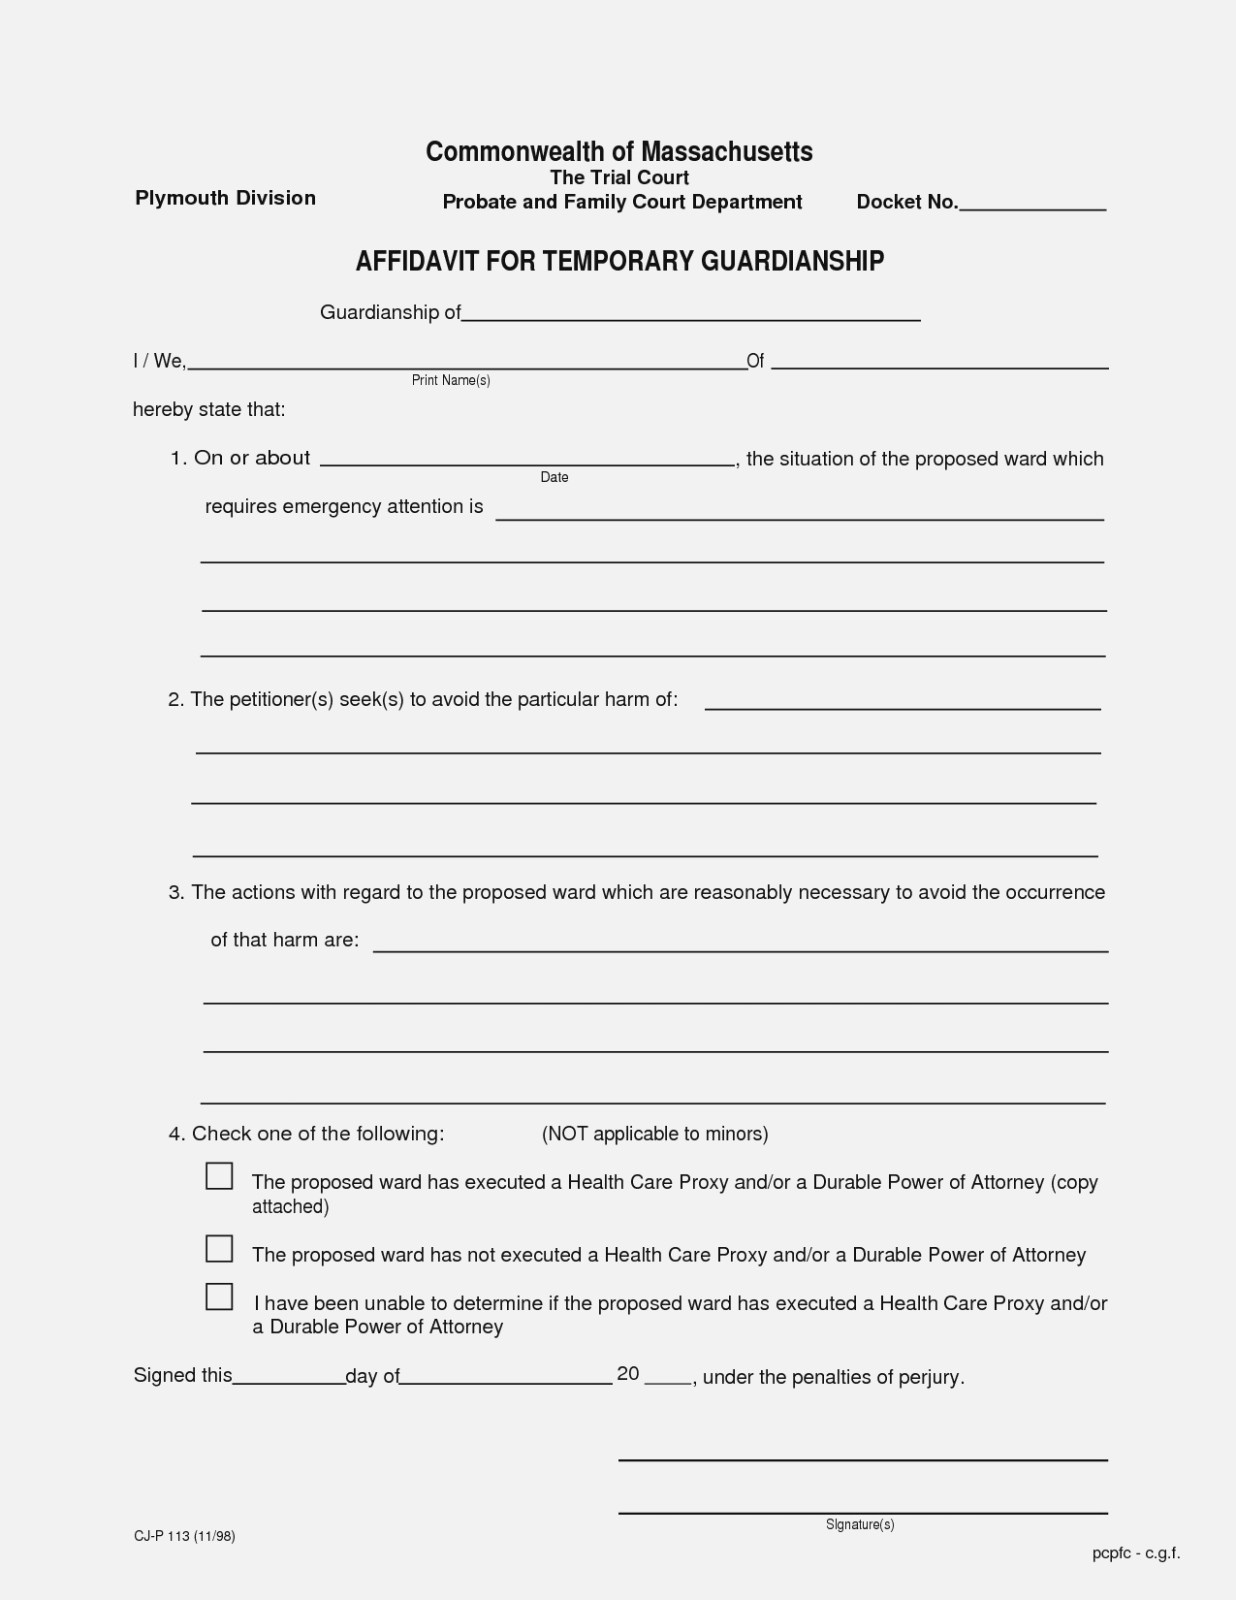 Ten Things You Probably | Realty Executives Mi : Invoice And Resume - Free Printable Temporary Guardianship Form